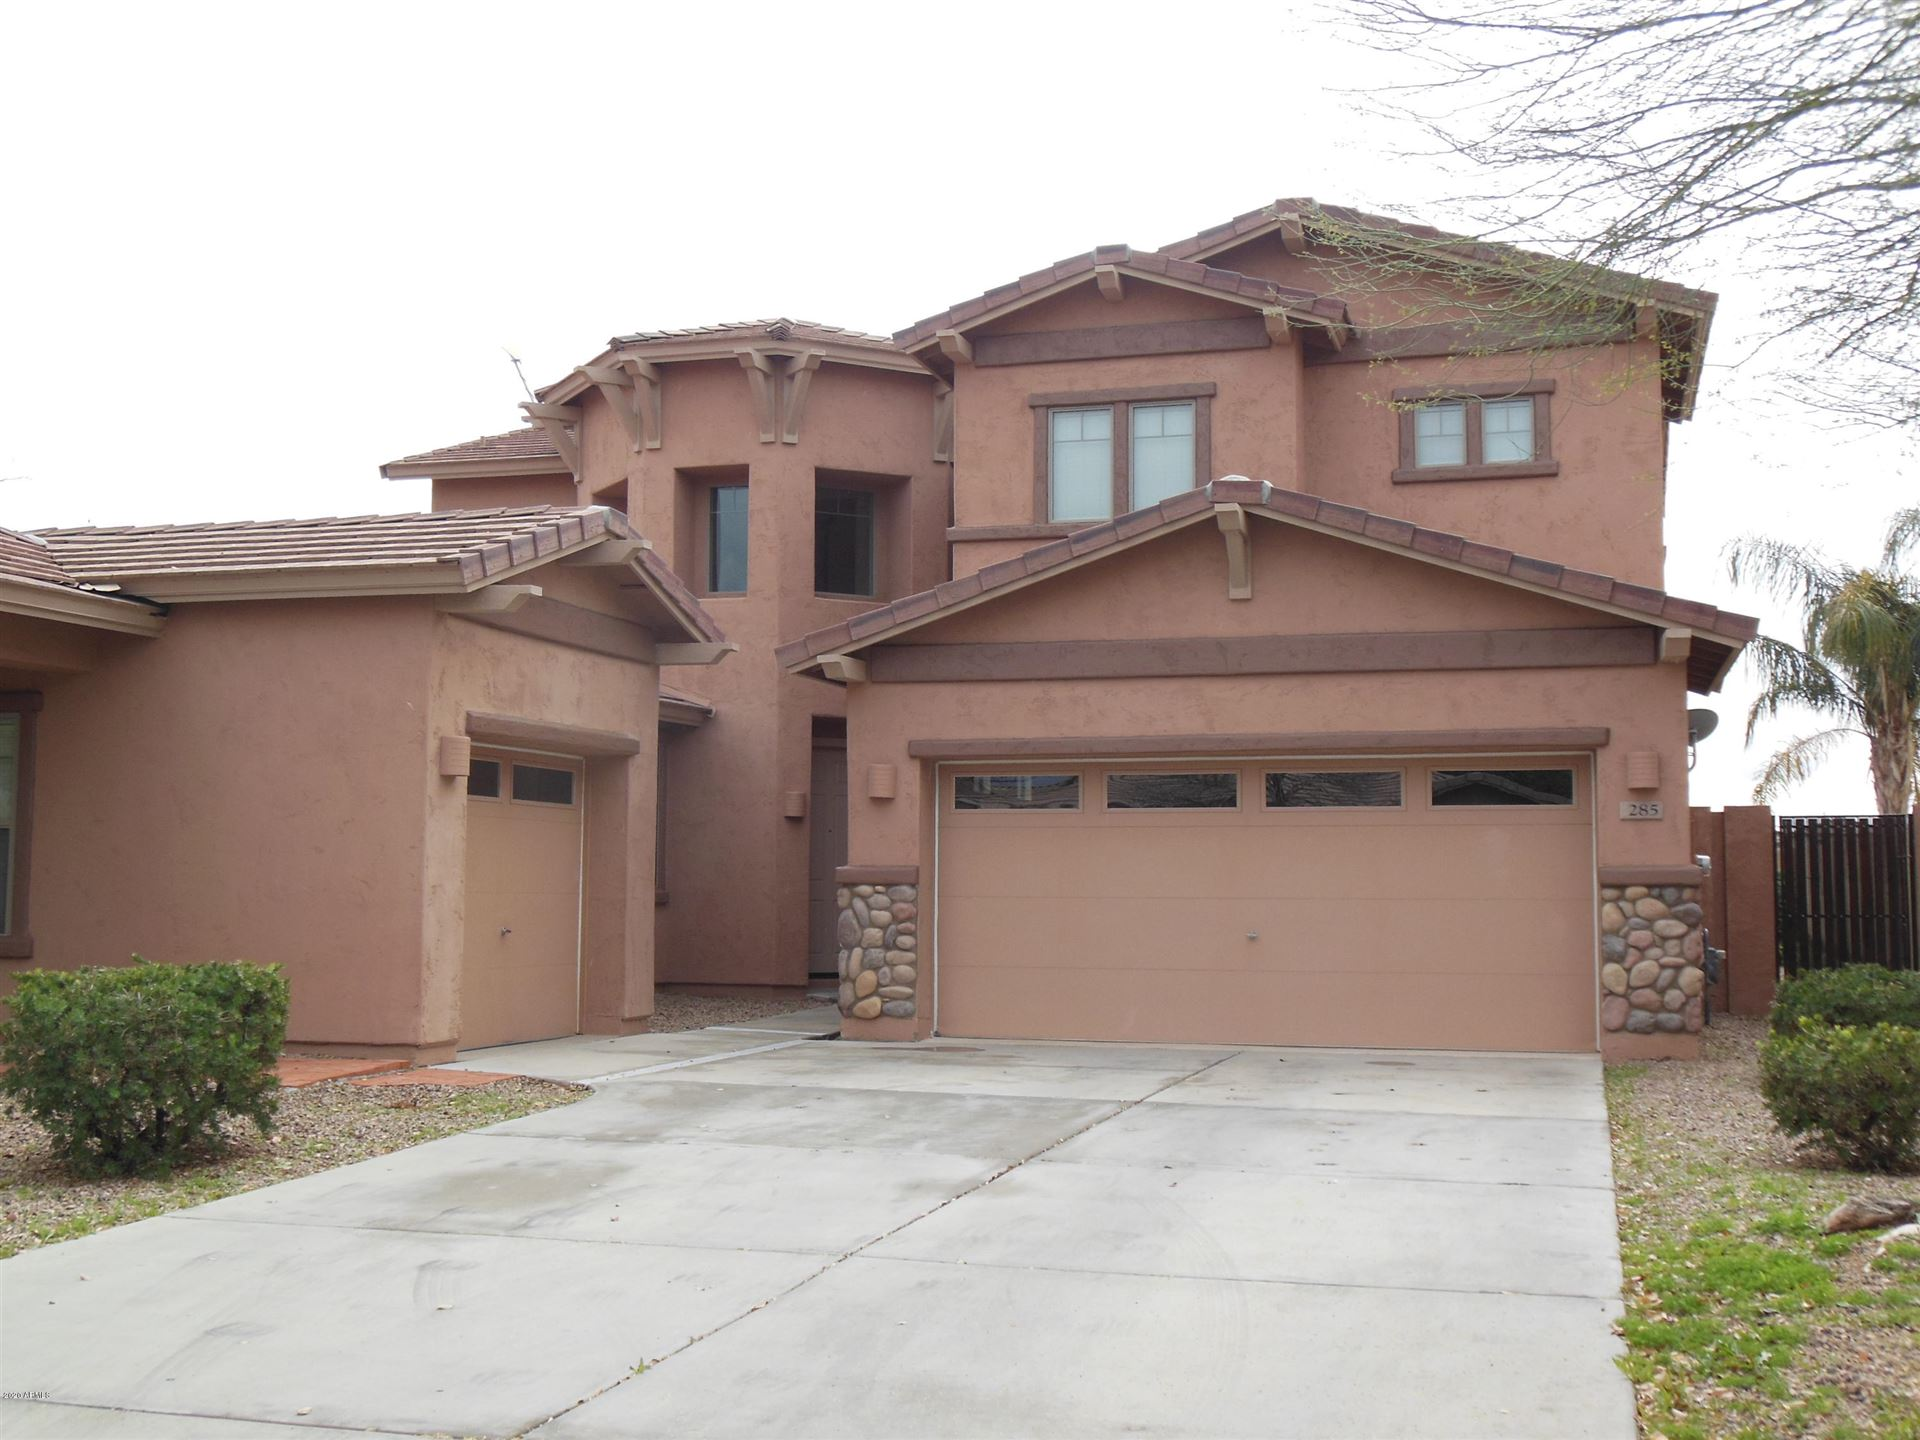 285 W KEY WEST Drive, Casa Grande, AZ 85122 - MLS#: 6032347